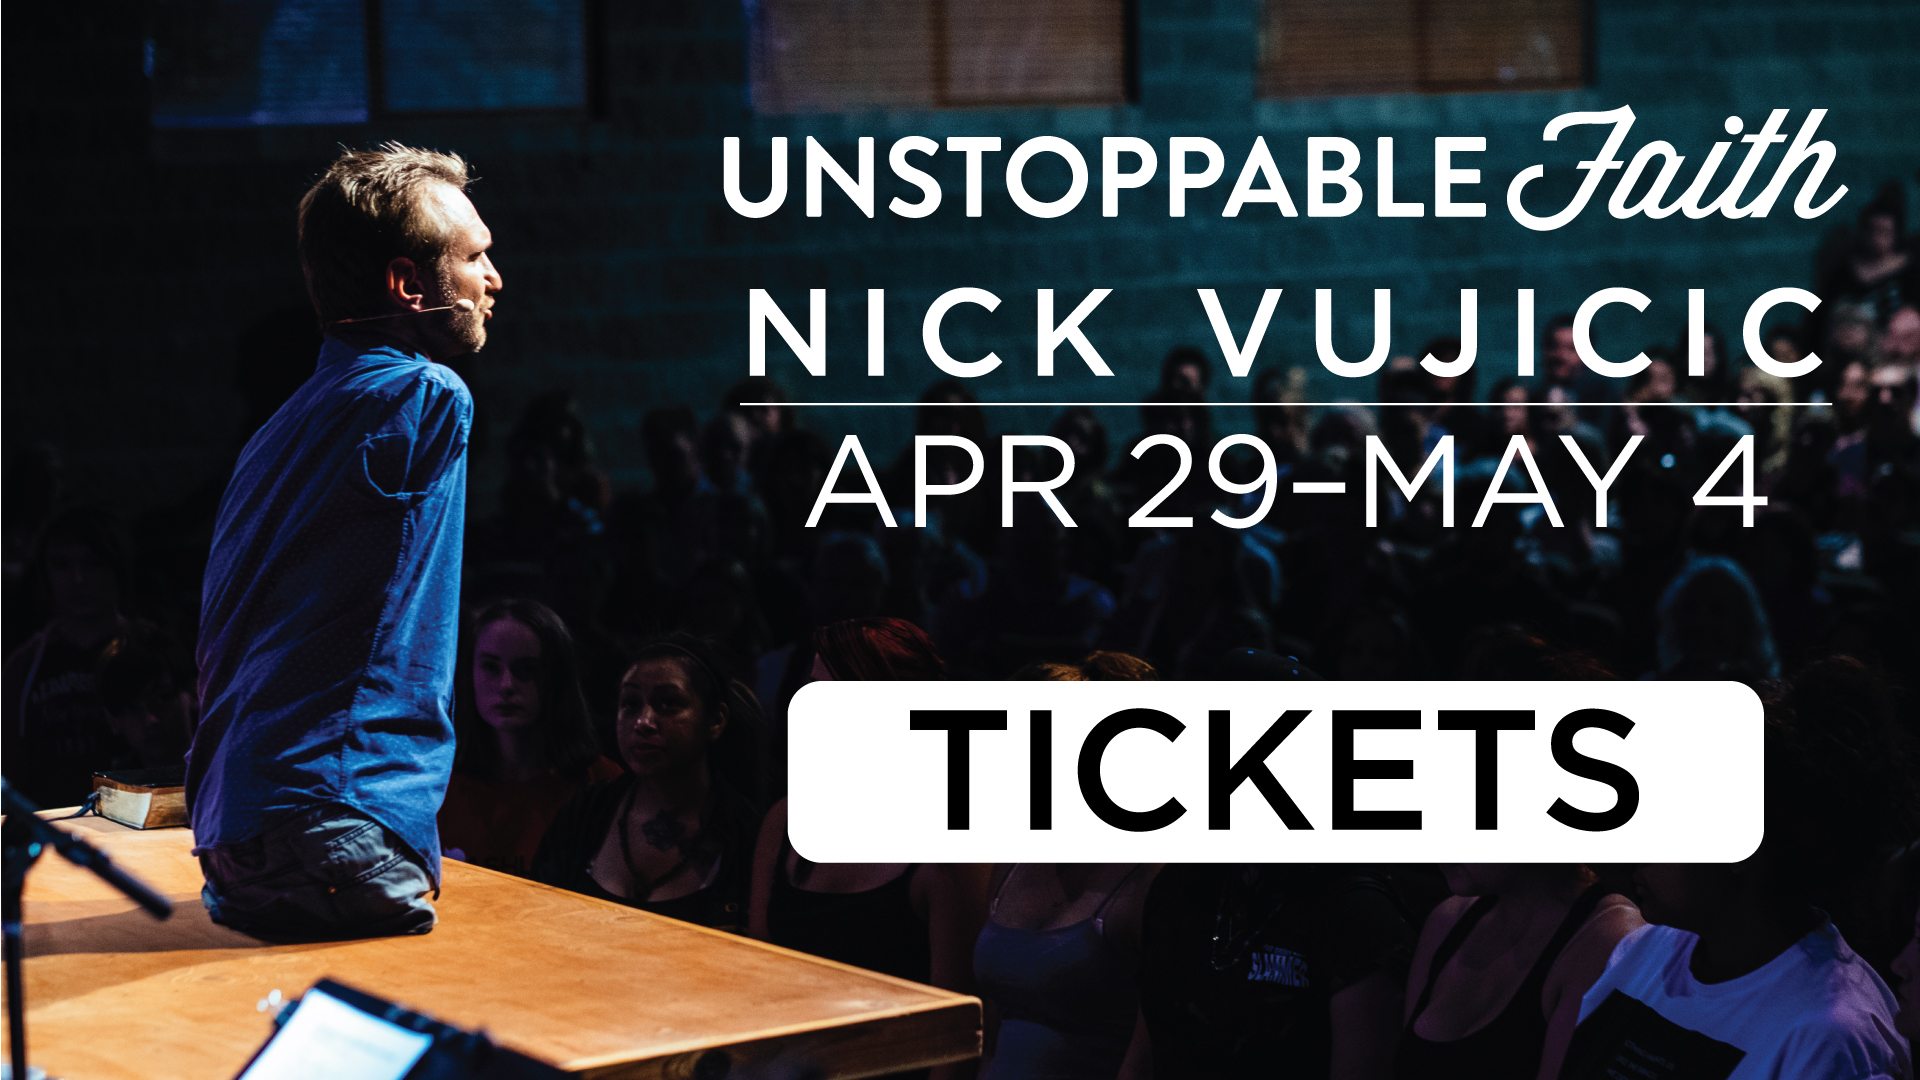 Unstoppable Faith with Nick Vujicic